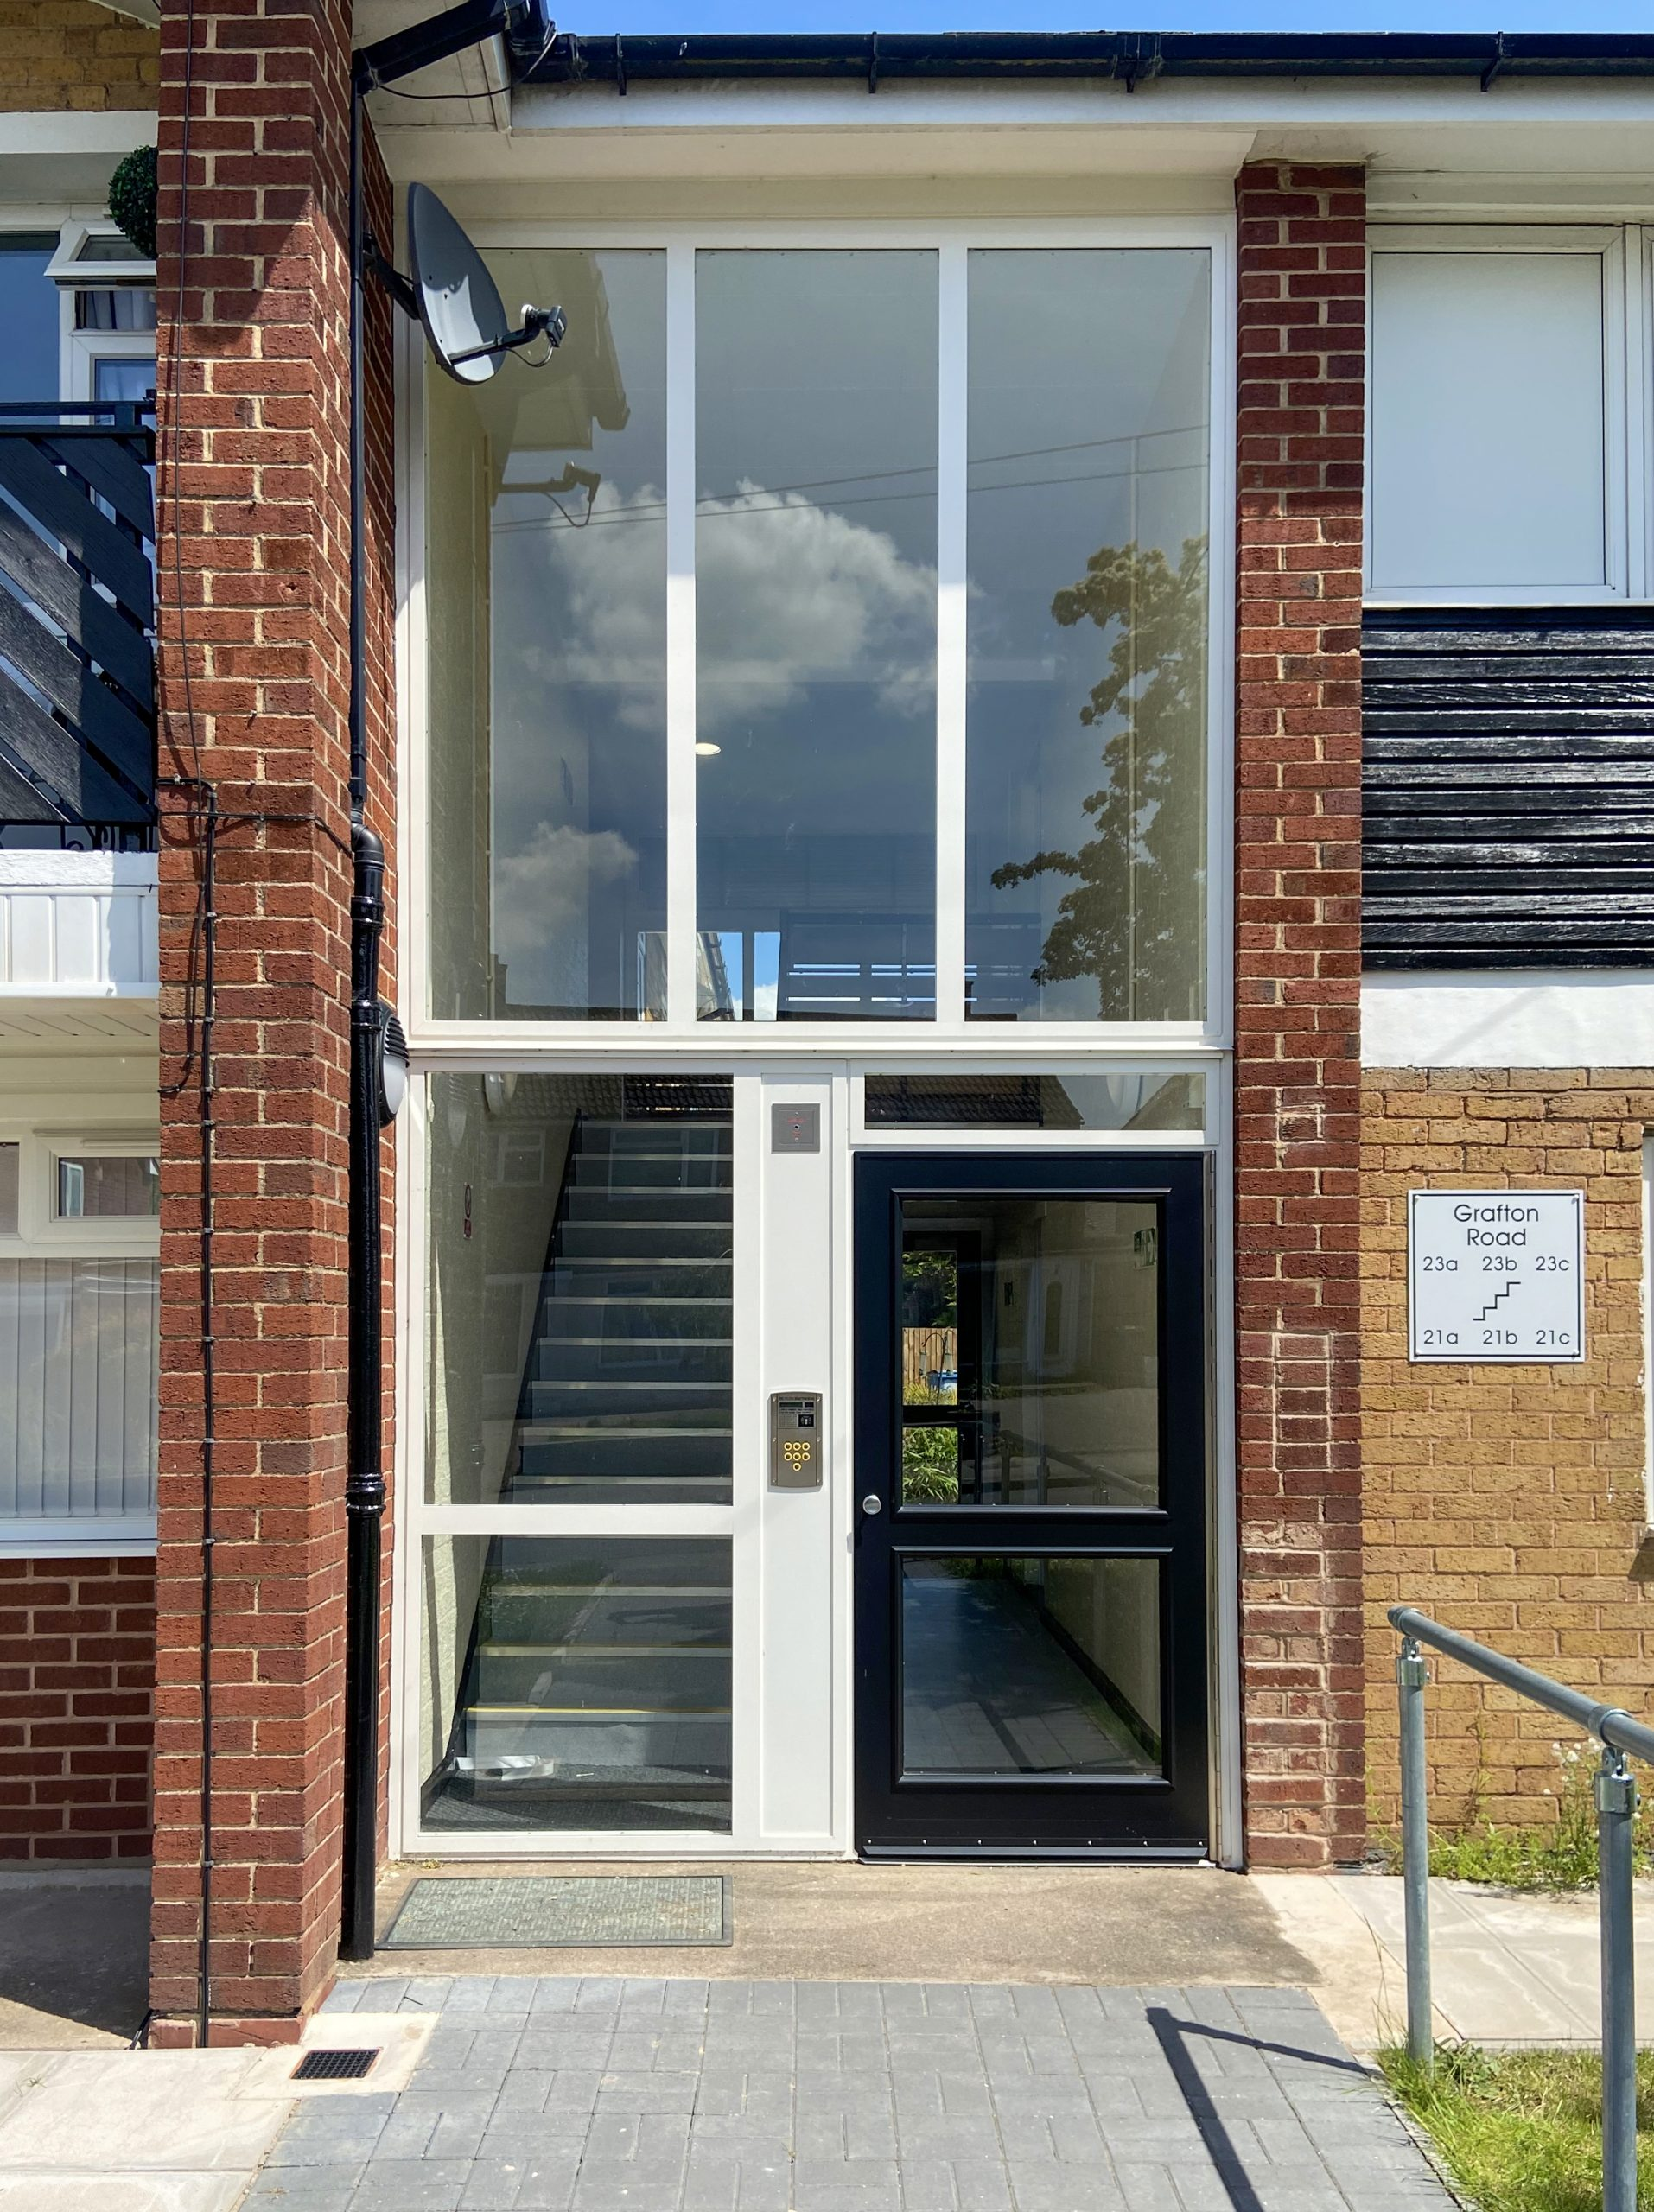 black door with a white frame and screens on a communal housing block